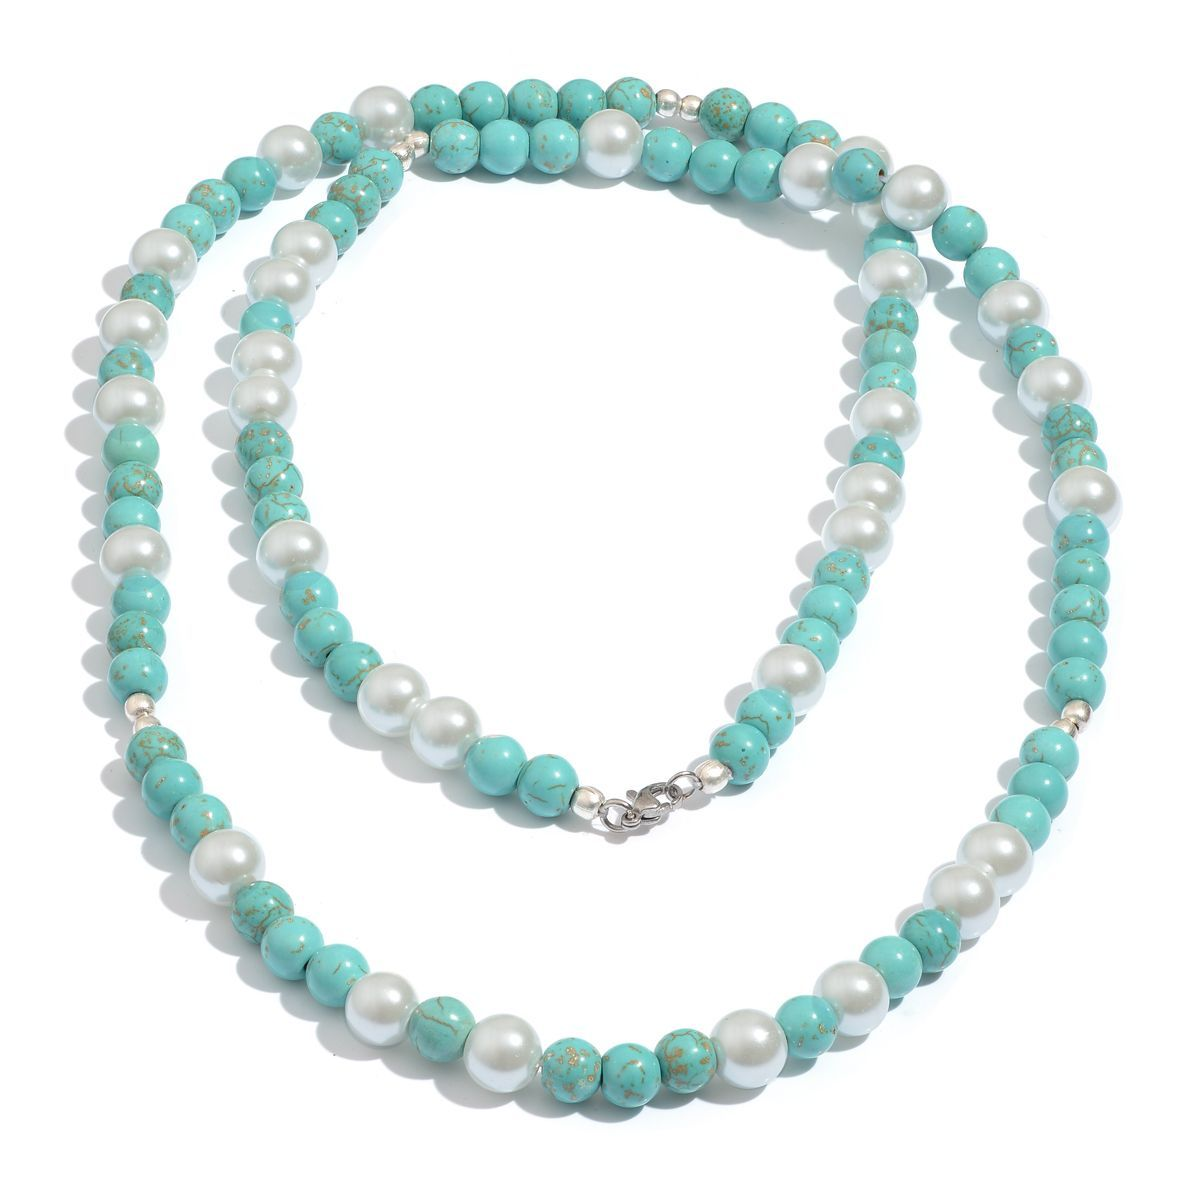 Blue Howlite, Glass Pearl Necklace (36 in) in Silvertone TGW 156.80 cts.